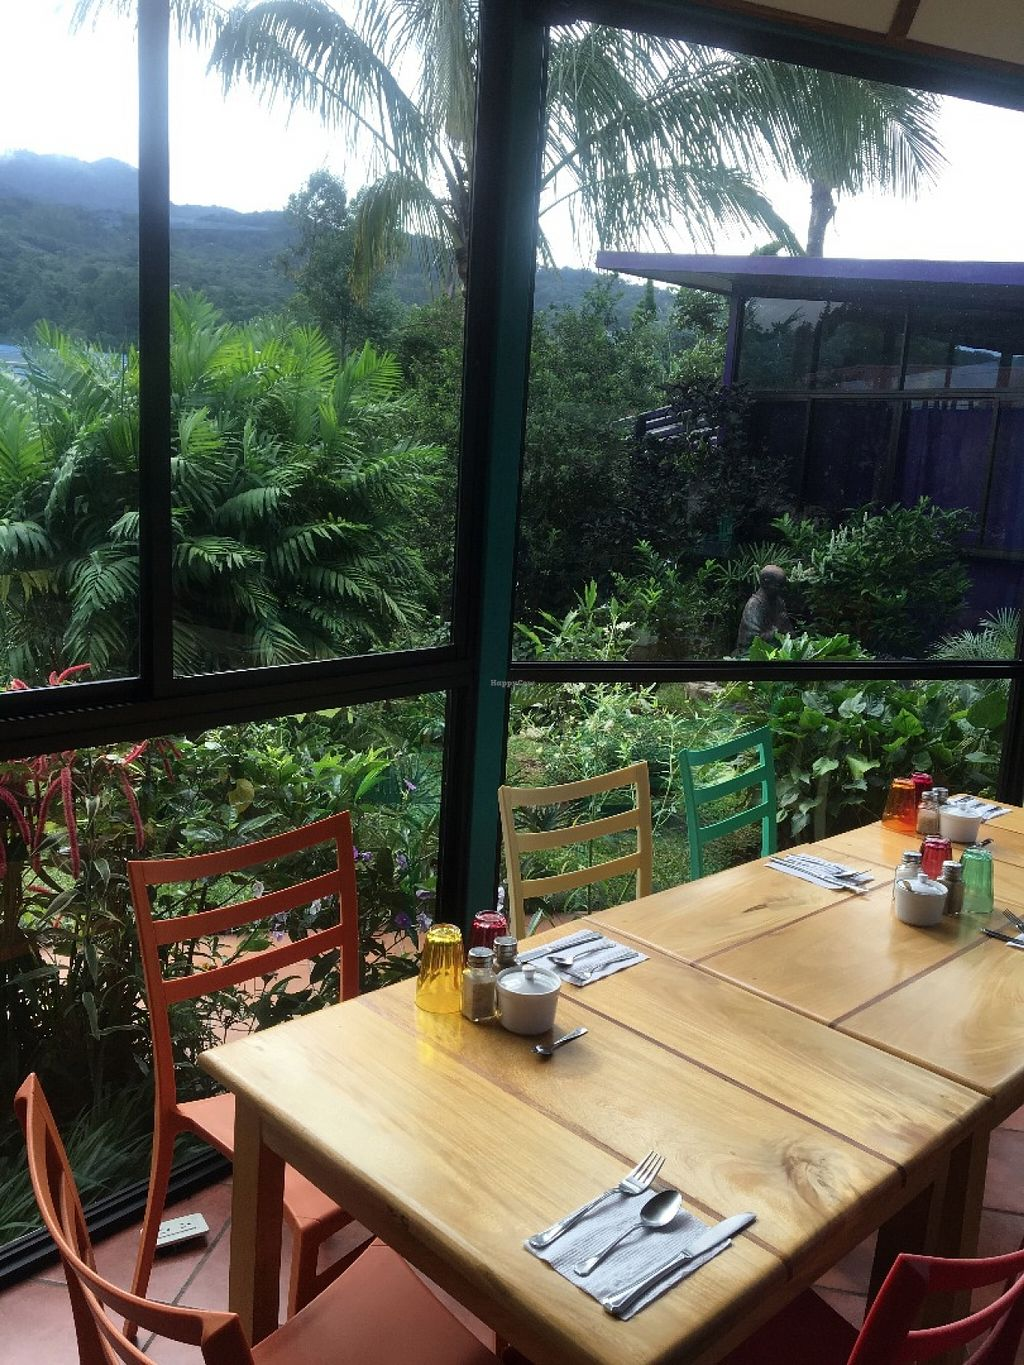 """Photo of CLOSED: The Greenhouse at Isla Verde  by <a href=""""/members/profile/greenhouseislaverde"""">greenhouseislaverde</a> <br/>Inside our restaurant we have the perfect views of nature.  <br/> July 7, 2016  - <a href='/contact/abuse/image/75828/158267'>Report</a>"""